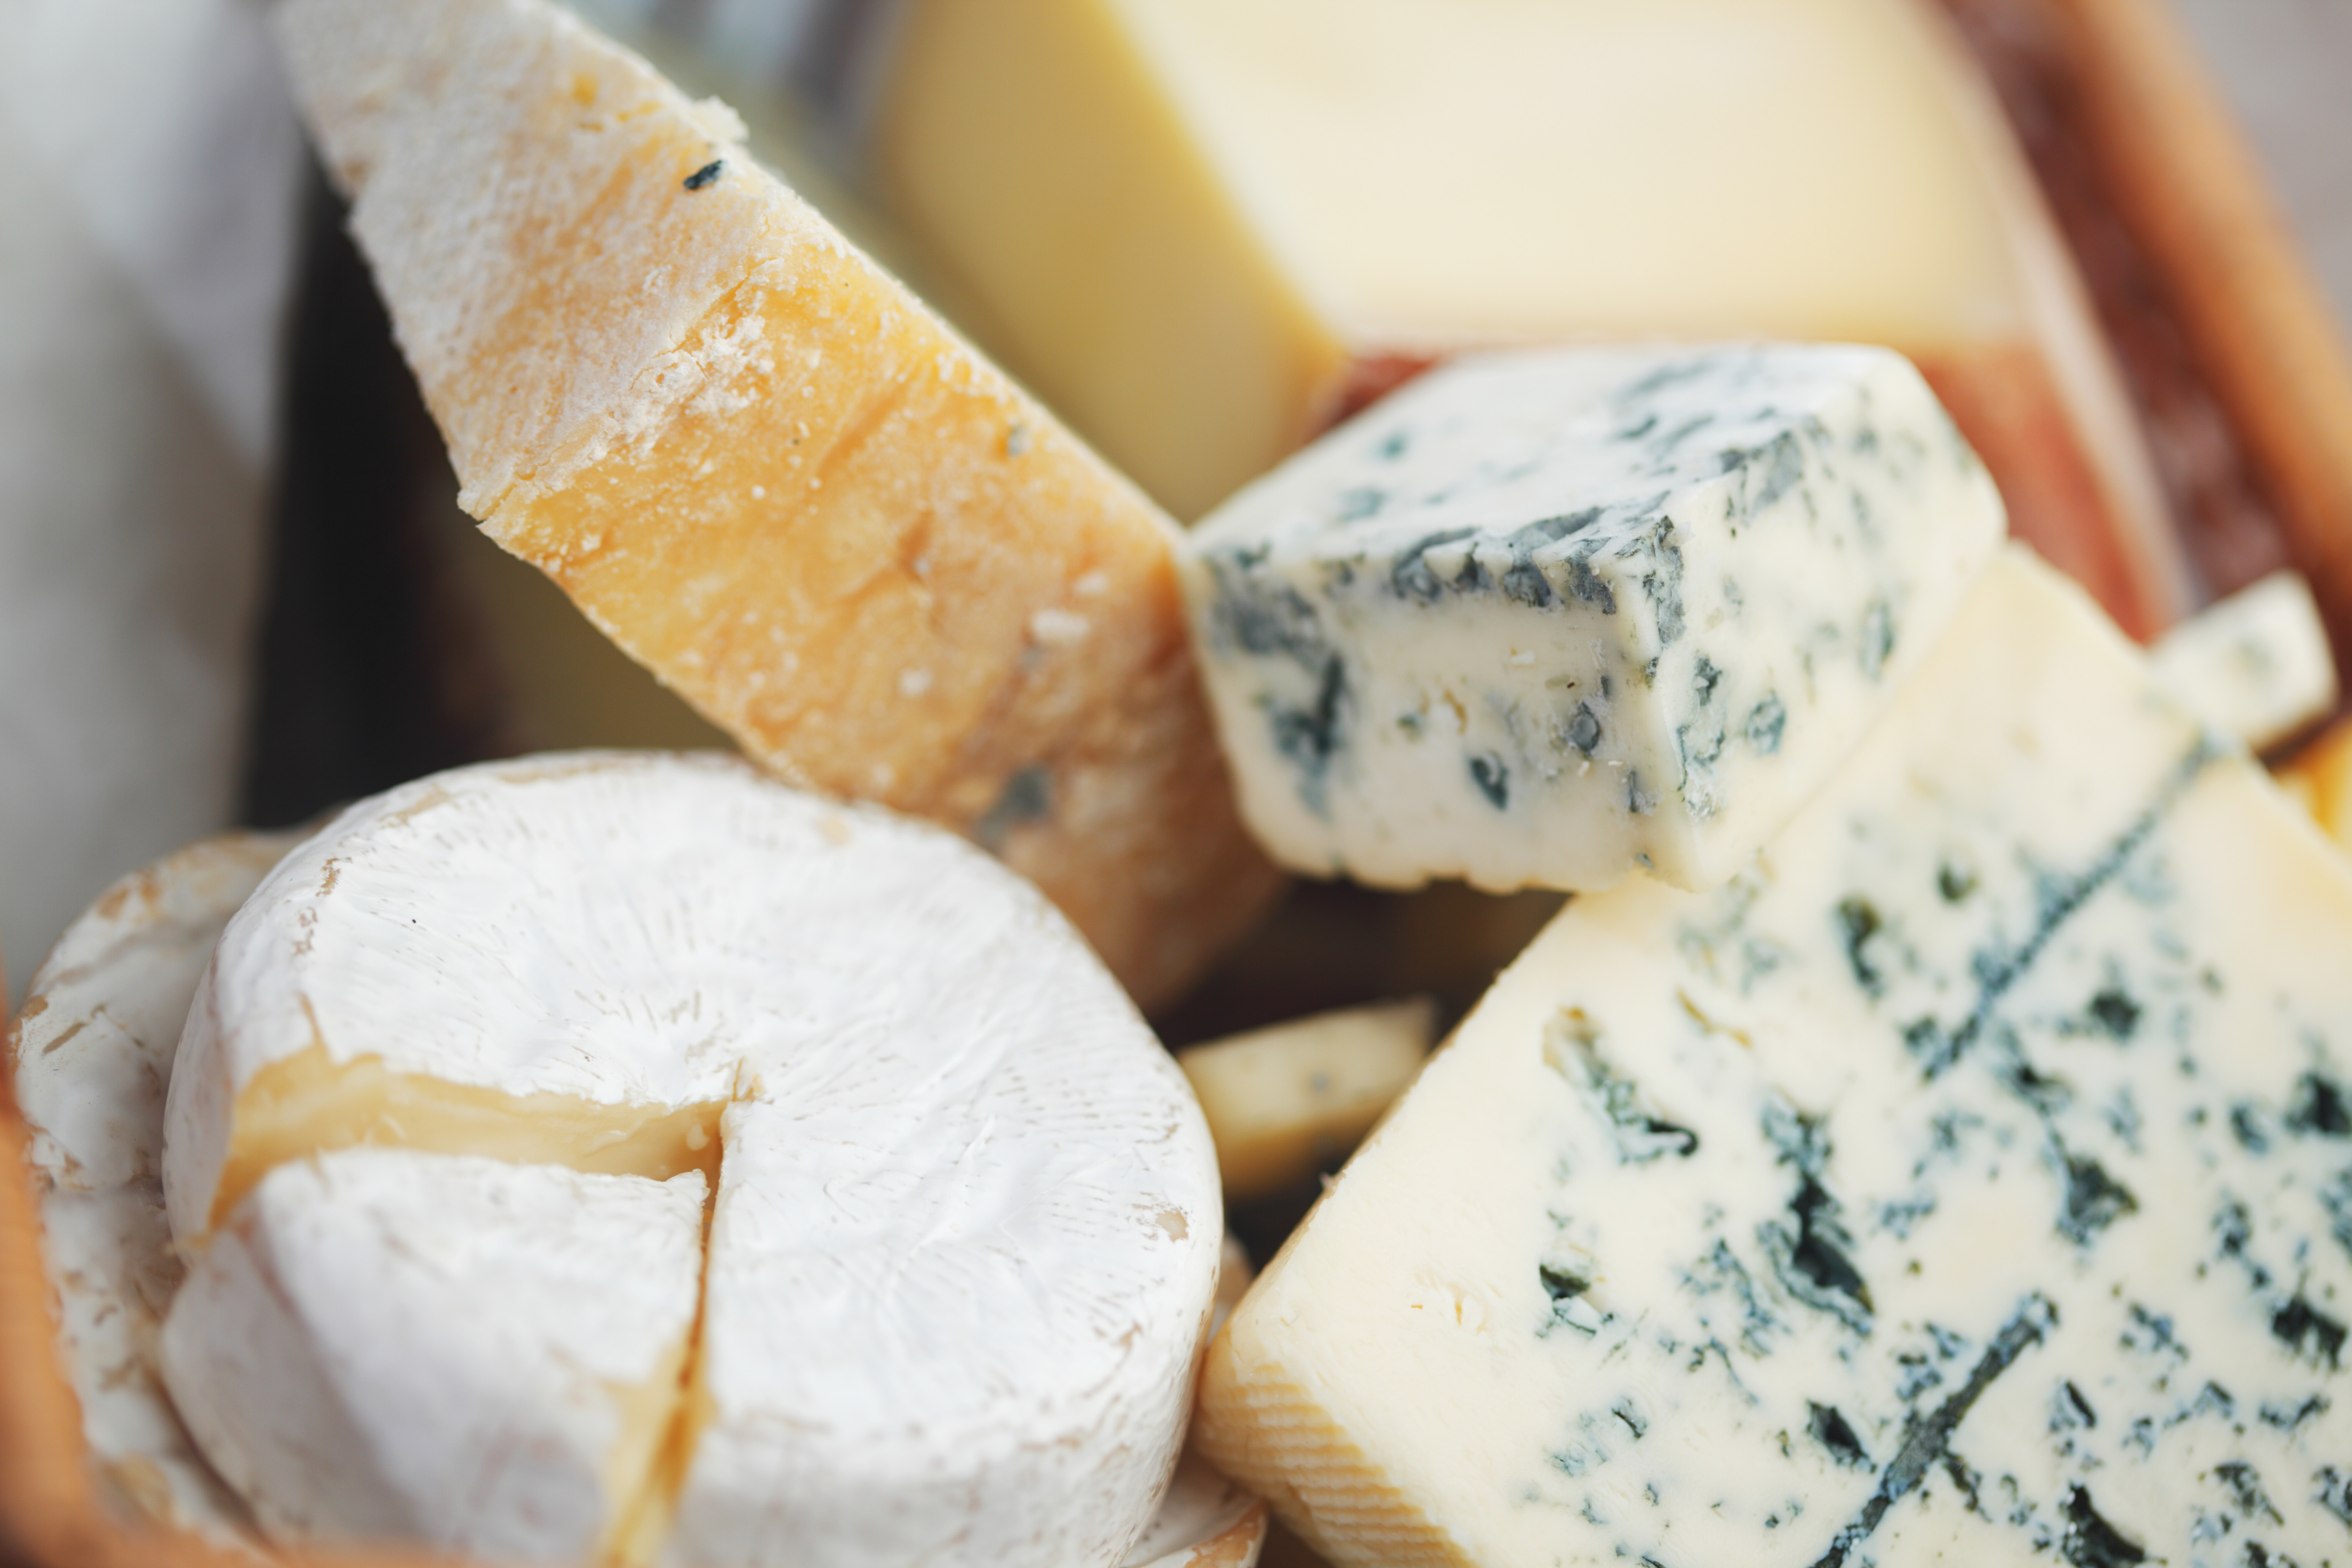 Various kinds of cheese piled together